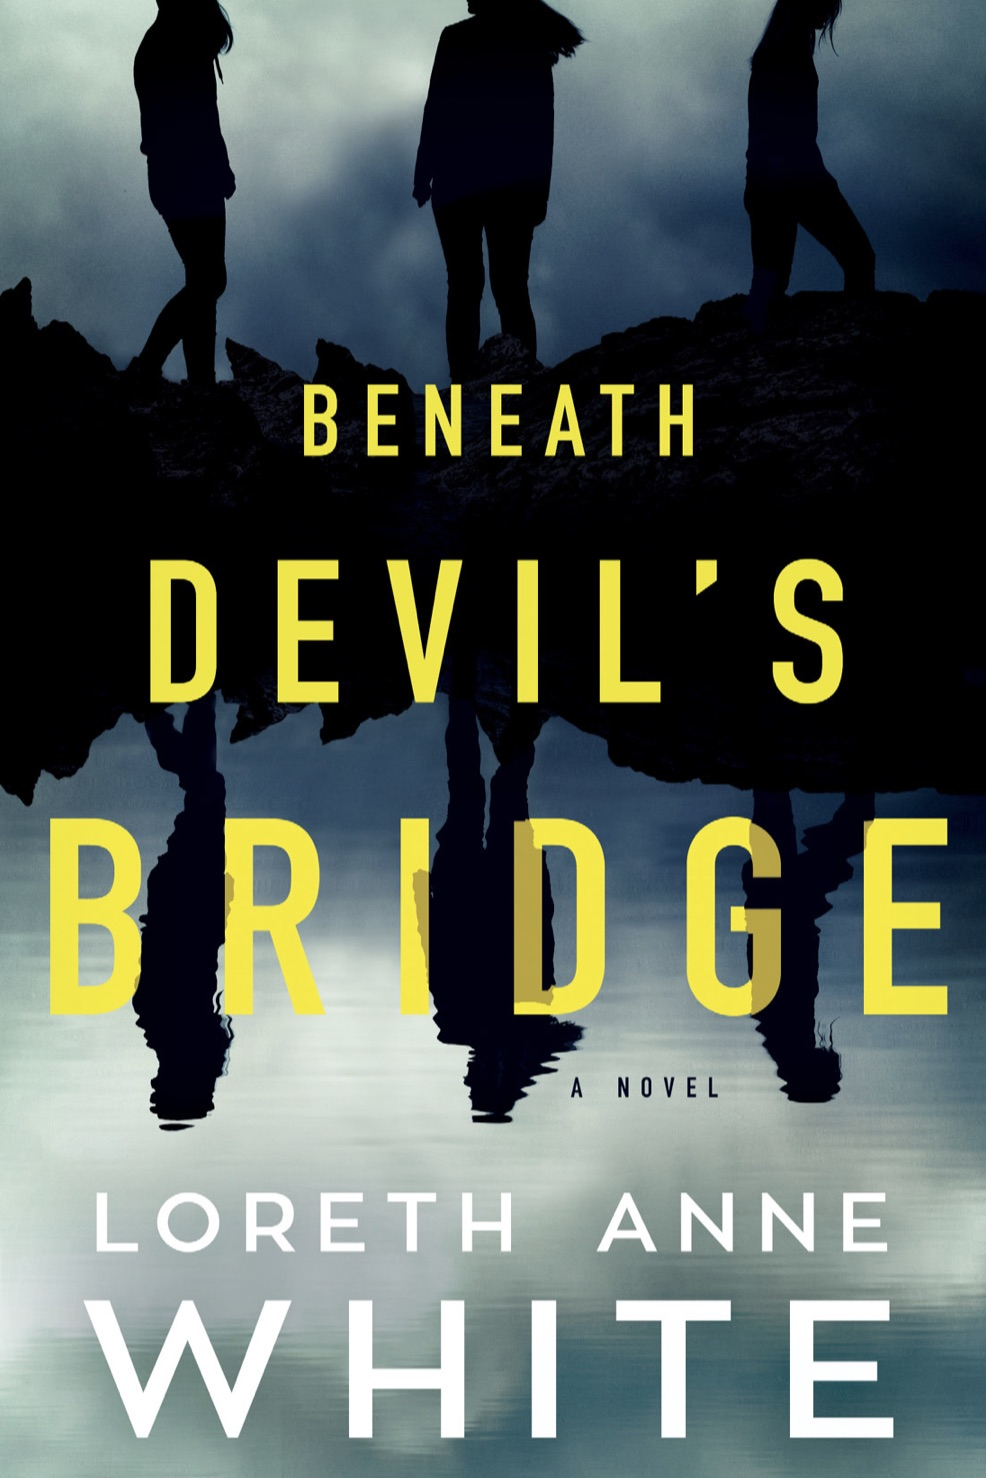 Beneath Devil's Bridge